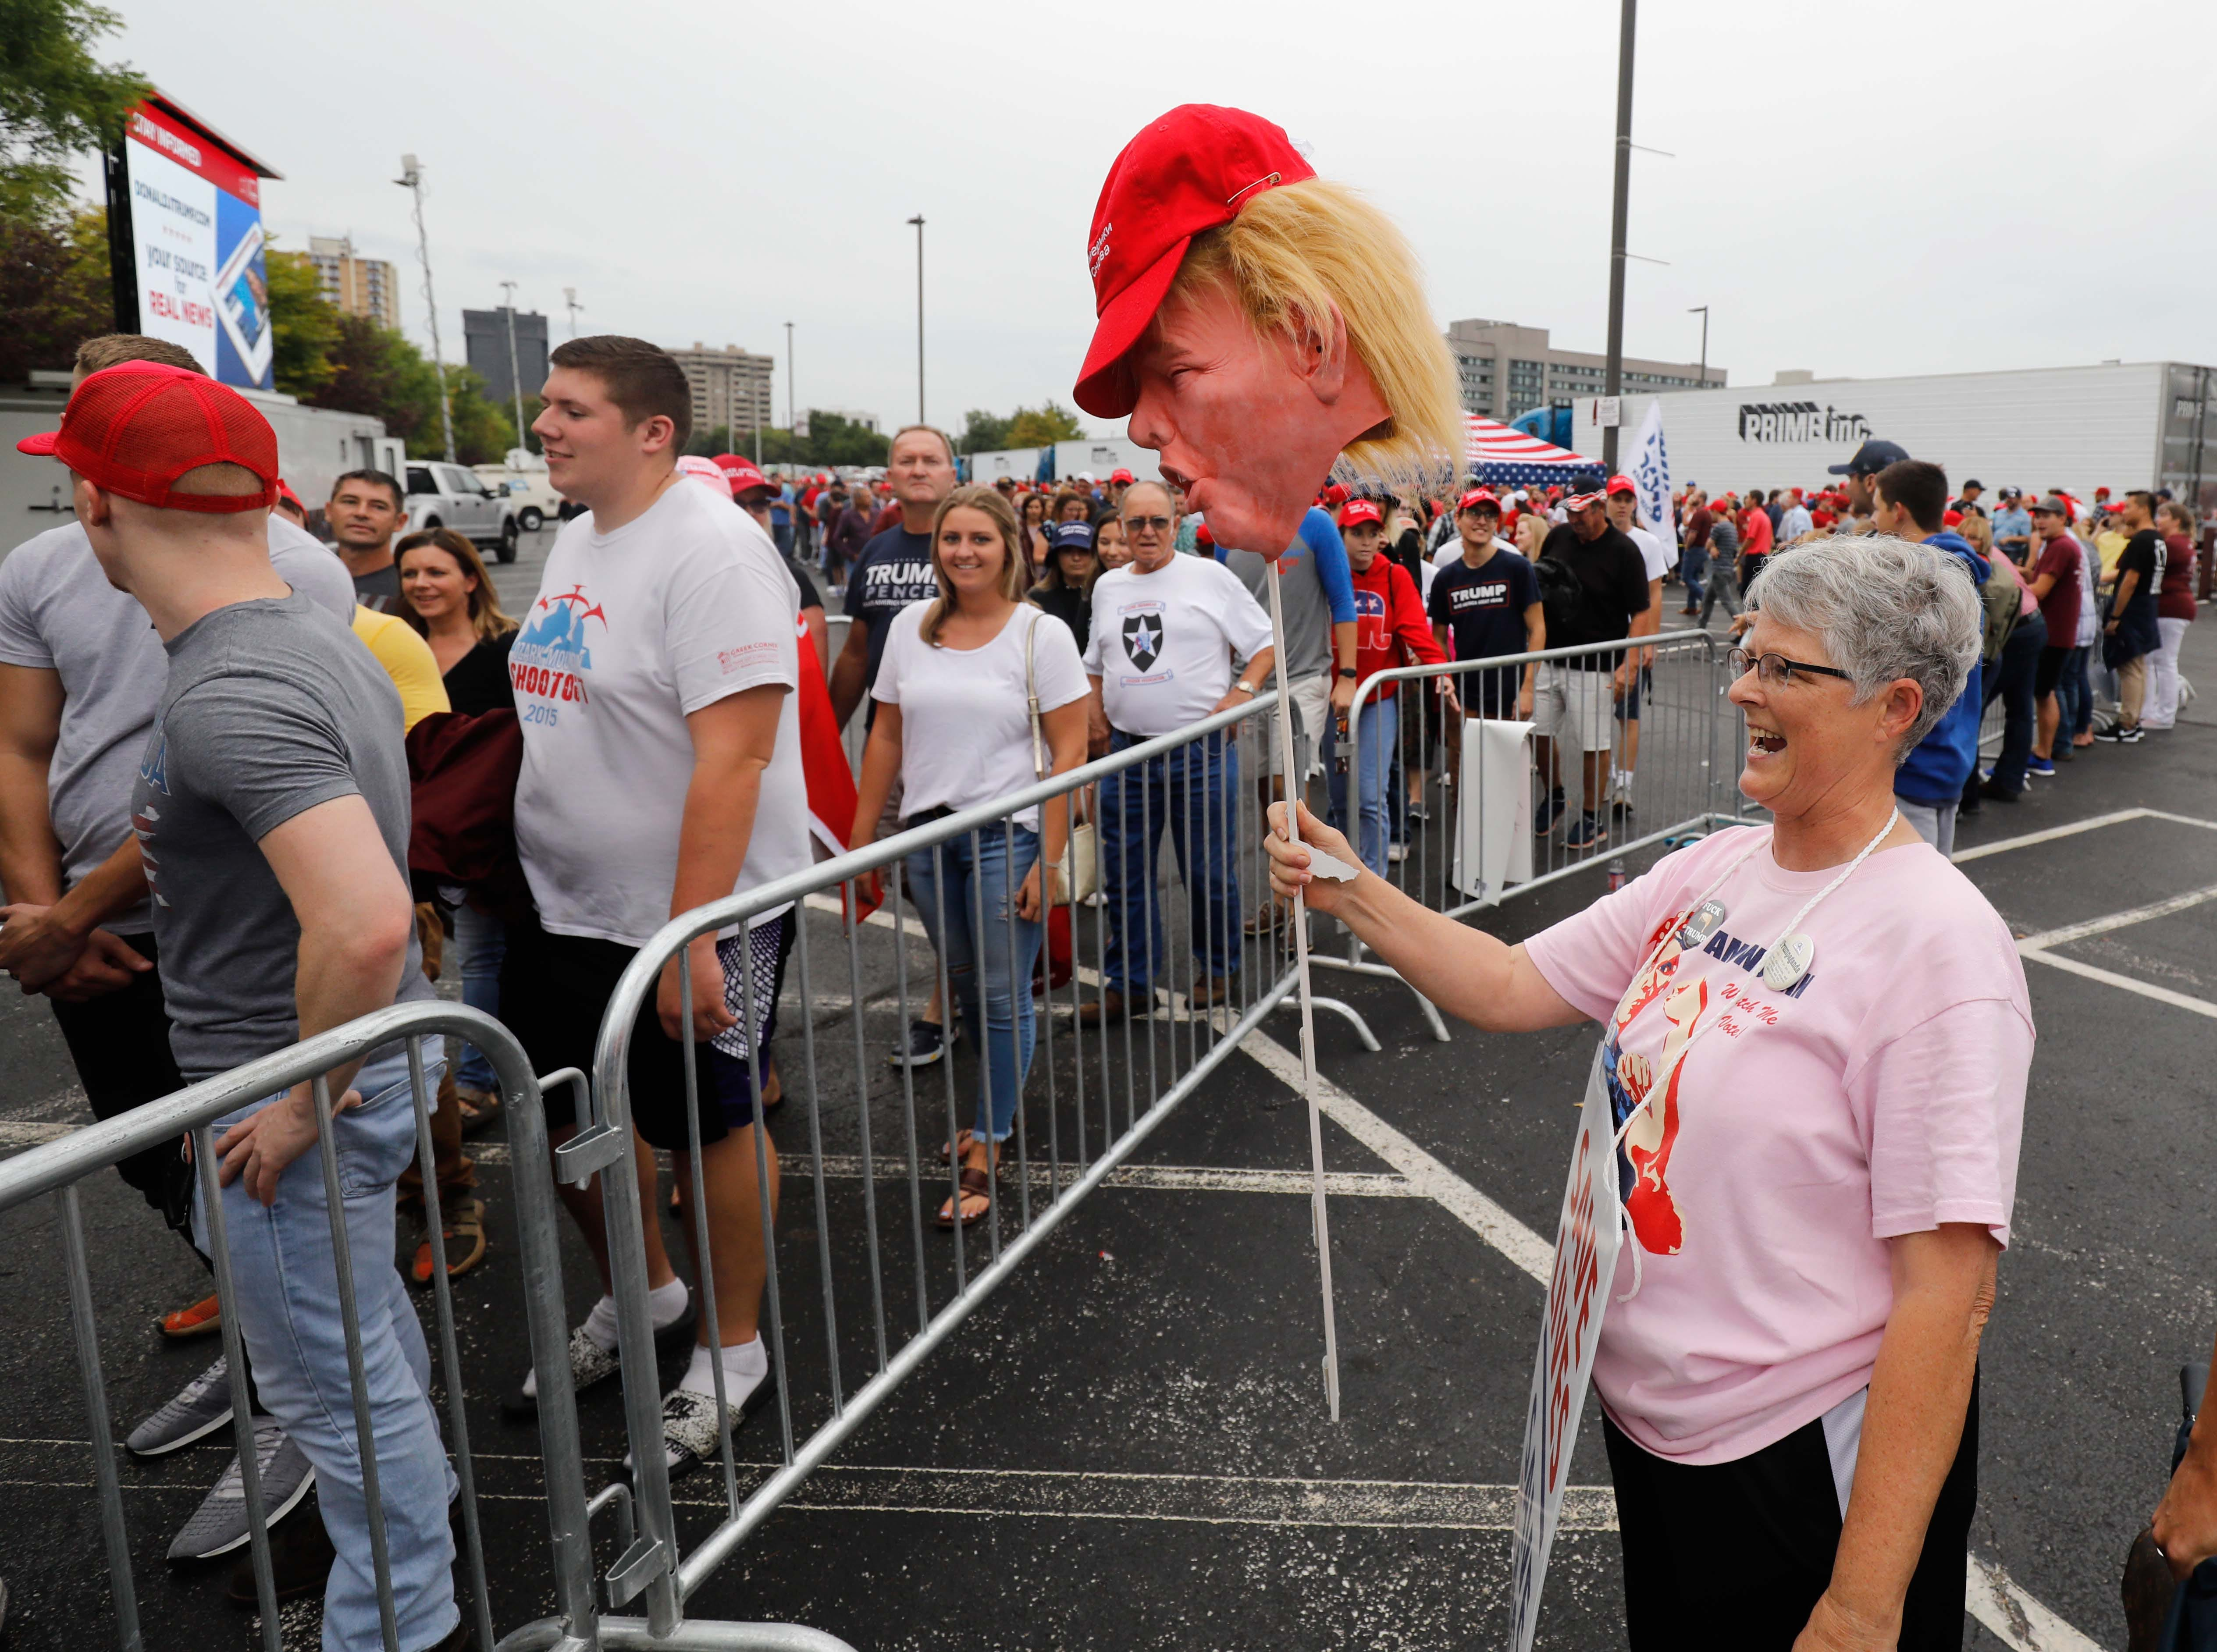 President Donald Trump was greeted by thousands of supporters and several hundred protesters.